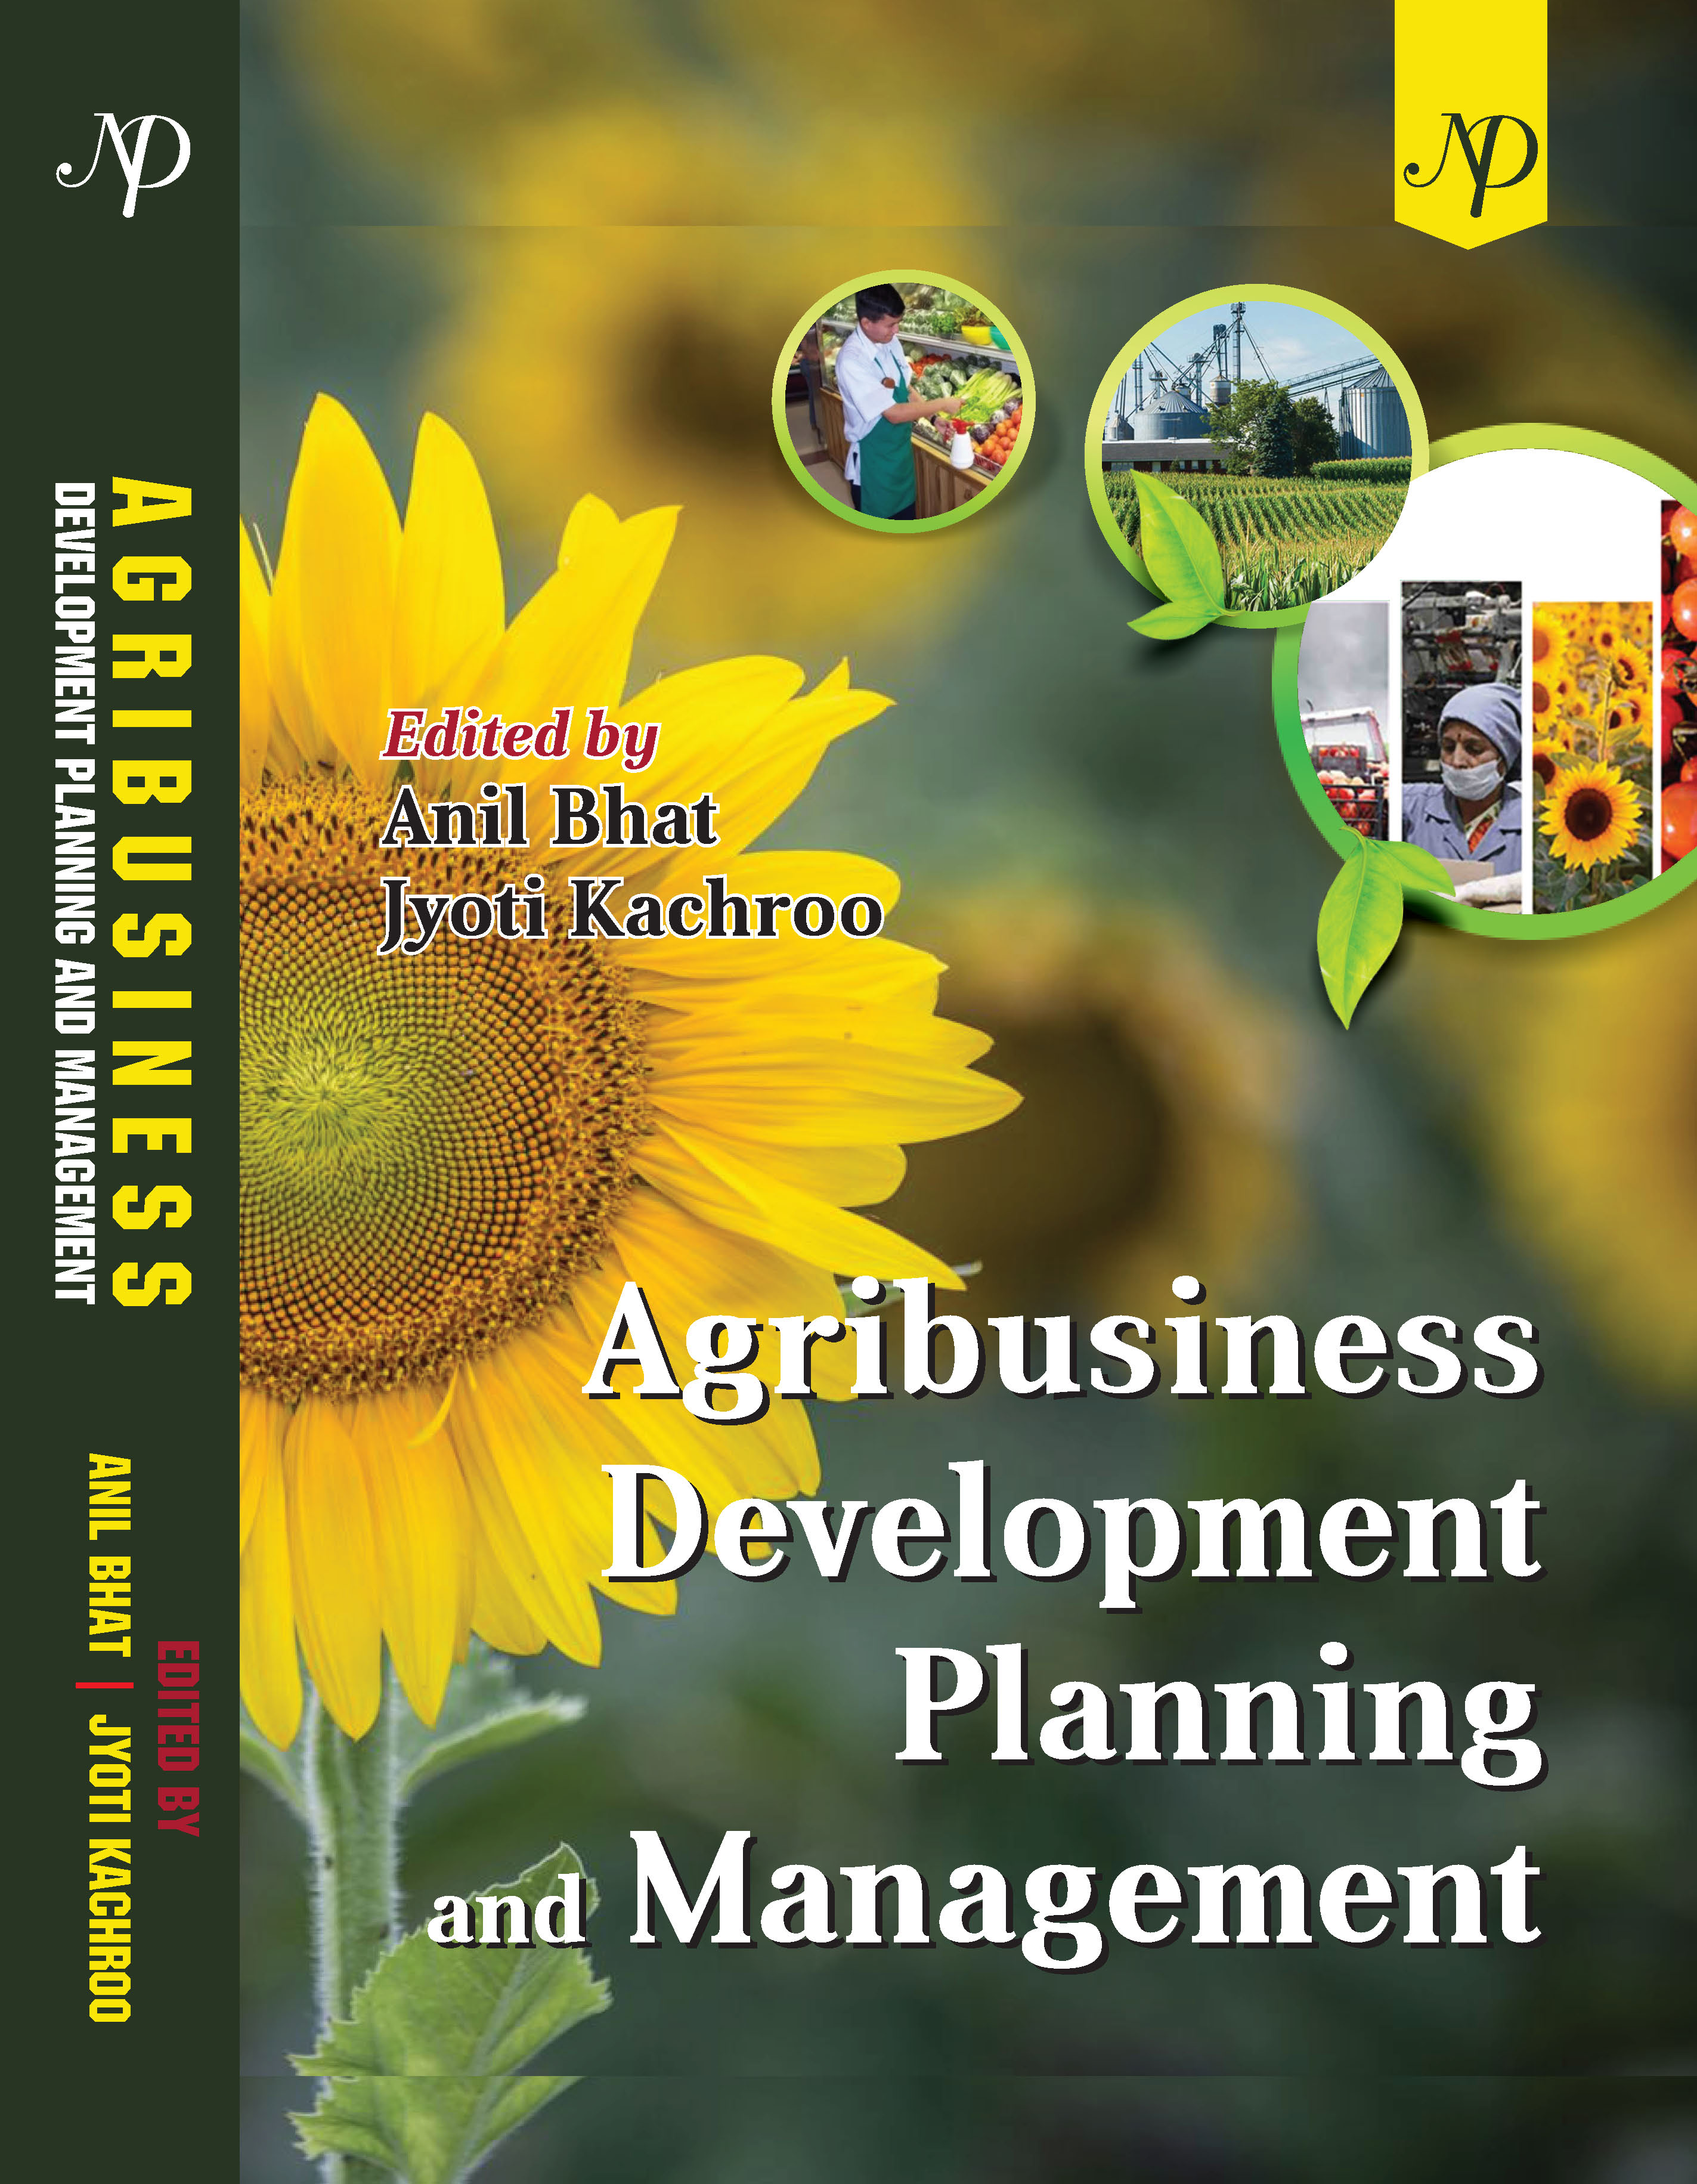 Agribusiness Development Planning and Management